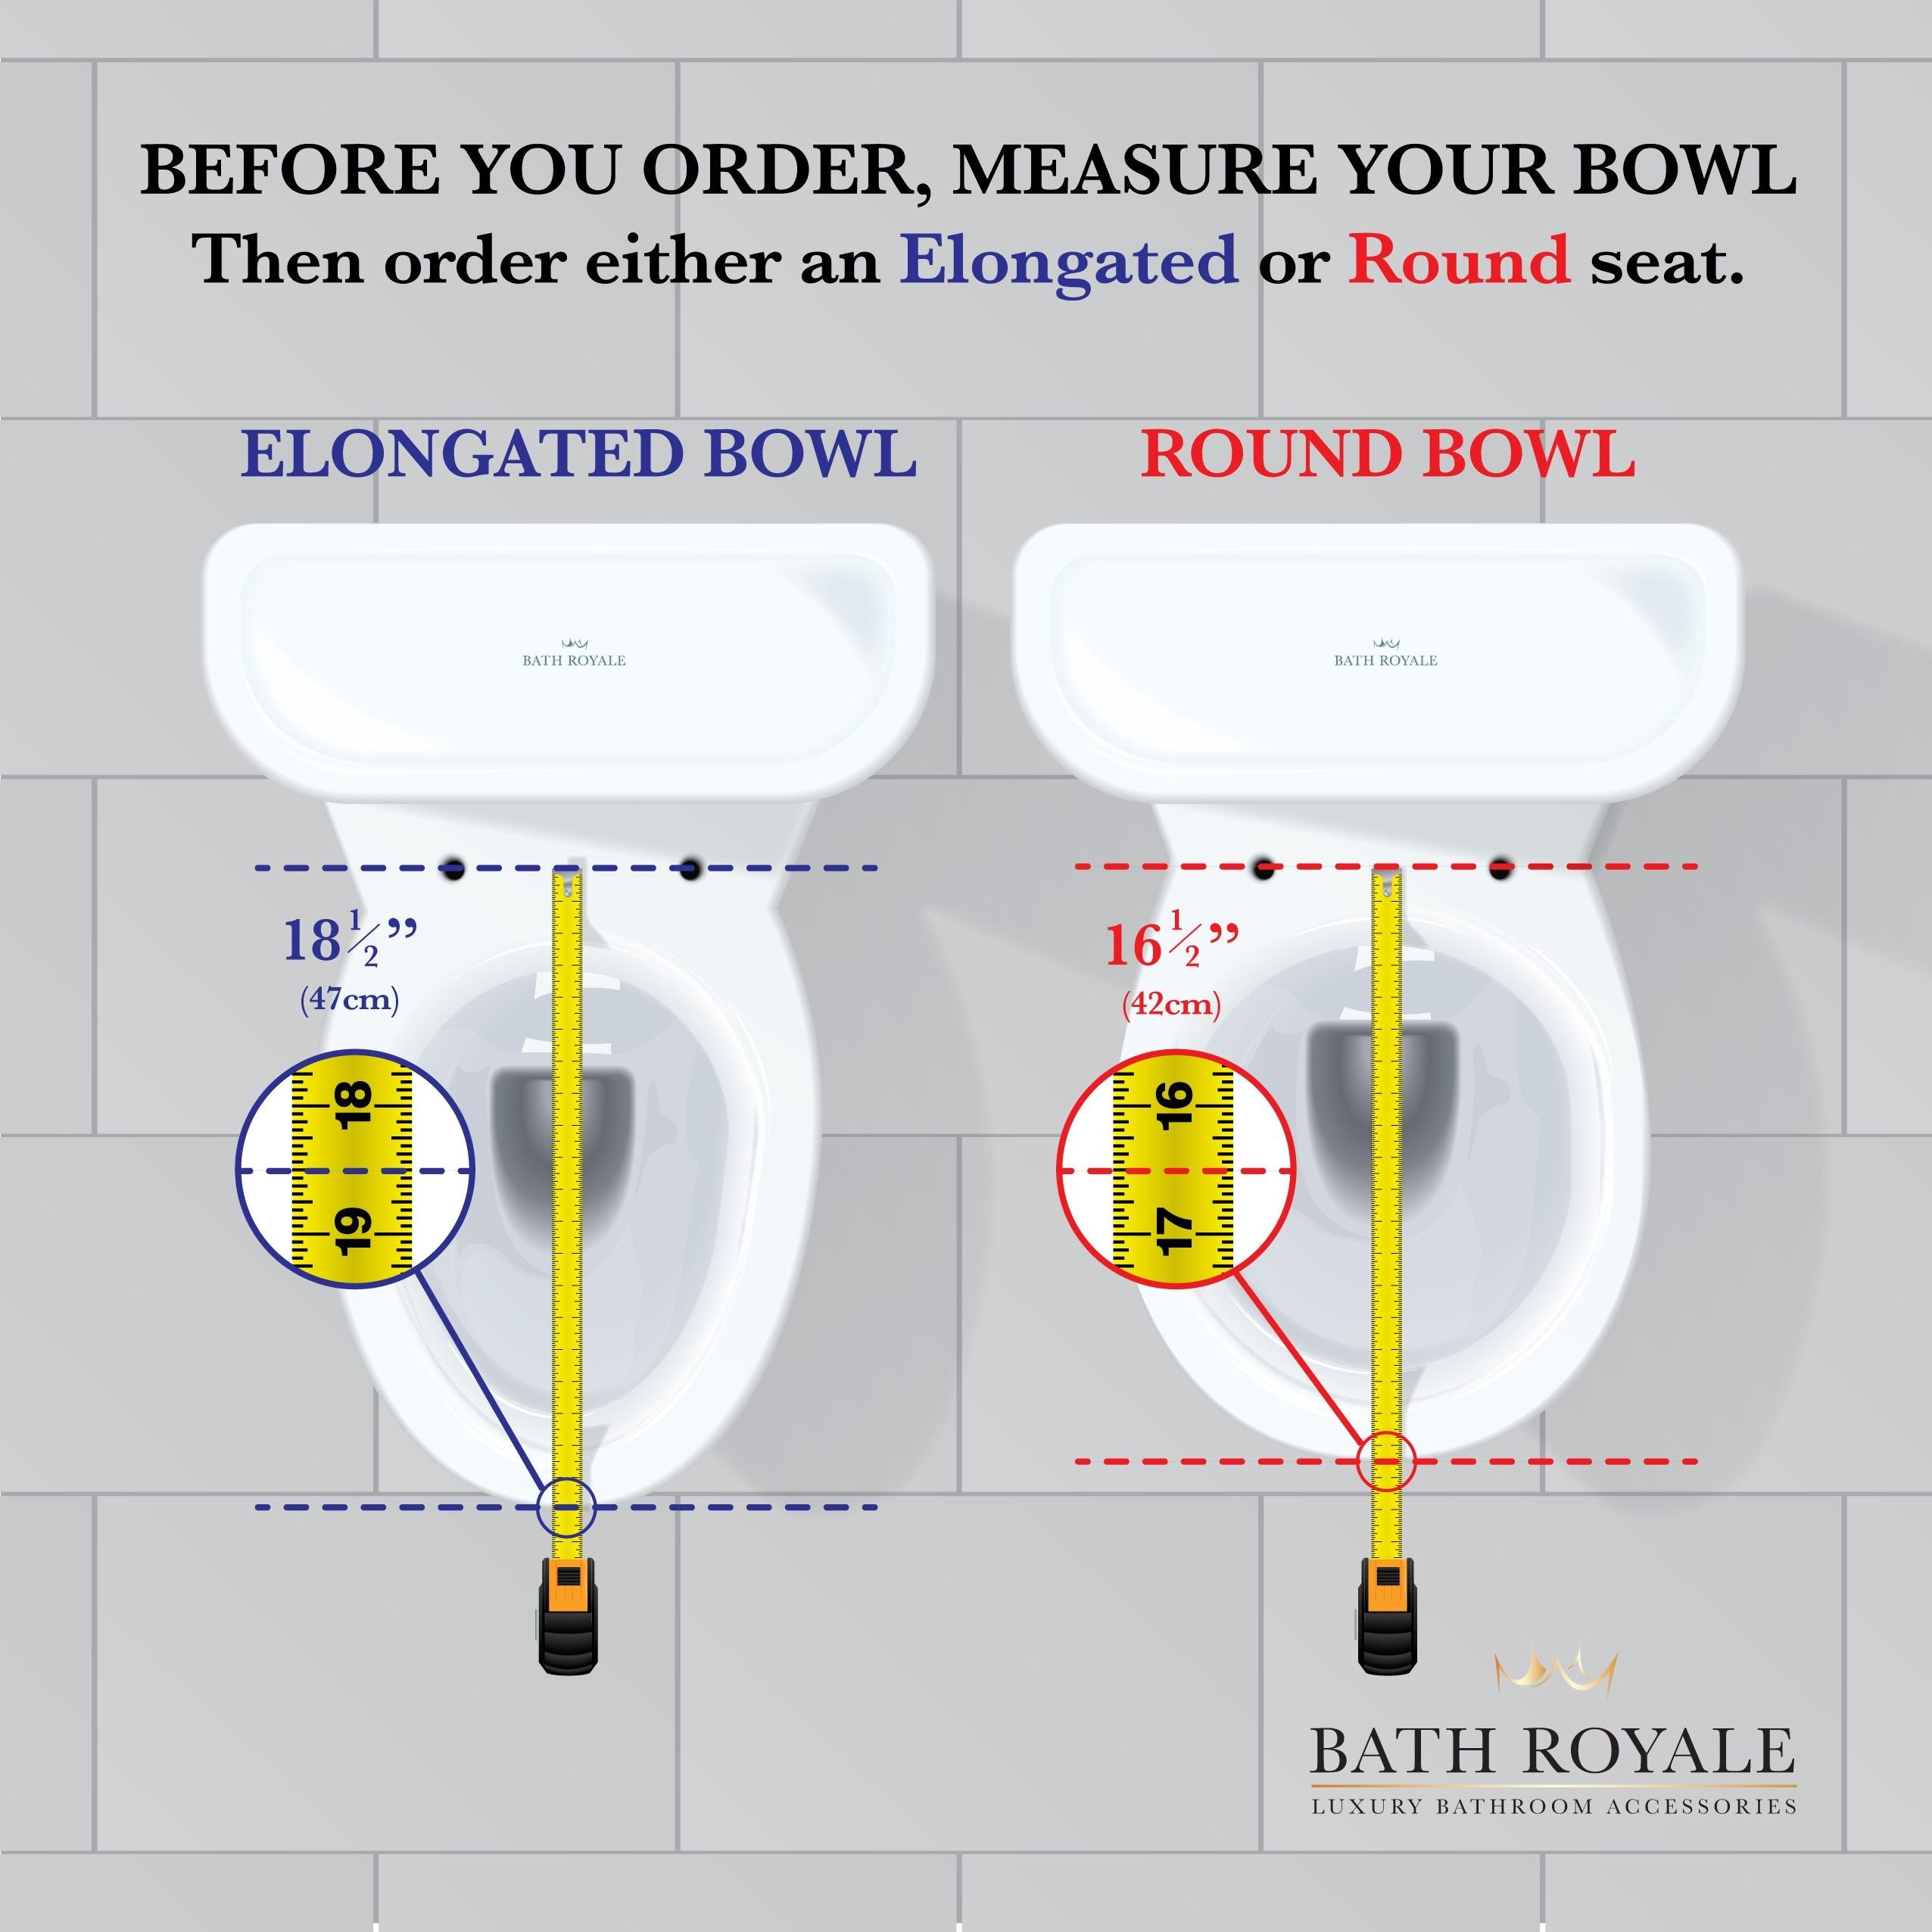 Before you order your toilet seat, measure your bowl to determine round or elongated seat